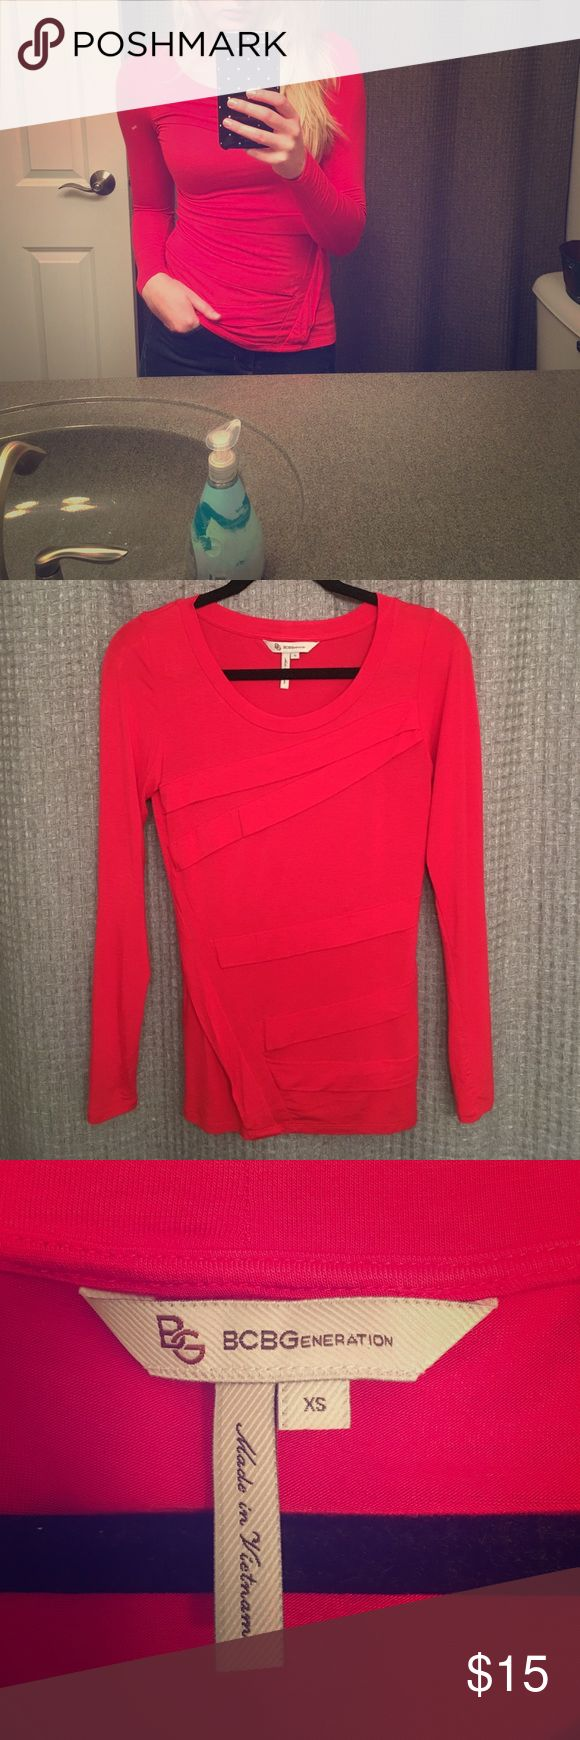 BCBGeneration Top Bright red BCBGeneration long sleeve BCBGeneration Tops Tees - Long Sleeve